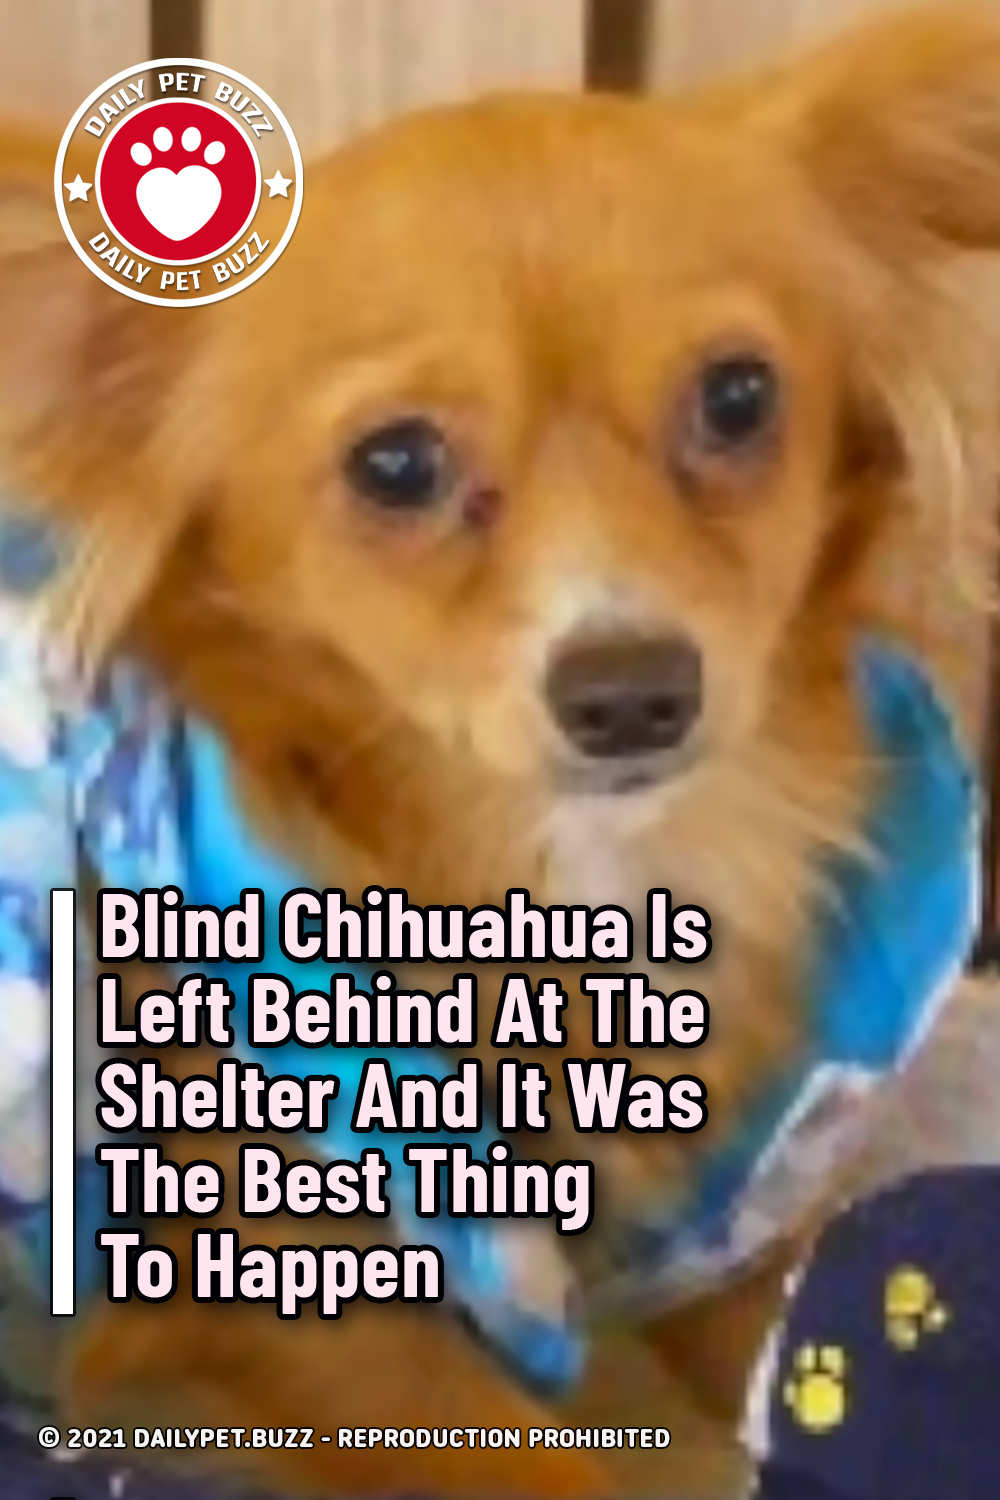 Blind Chihuahua Is Left Behind At The Shelter And It Was The Best Thing To Happen